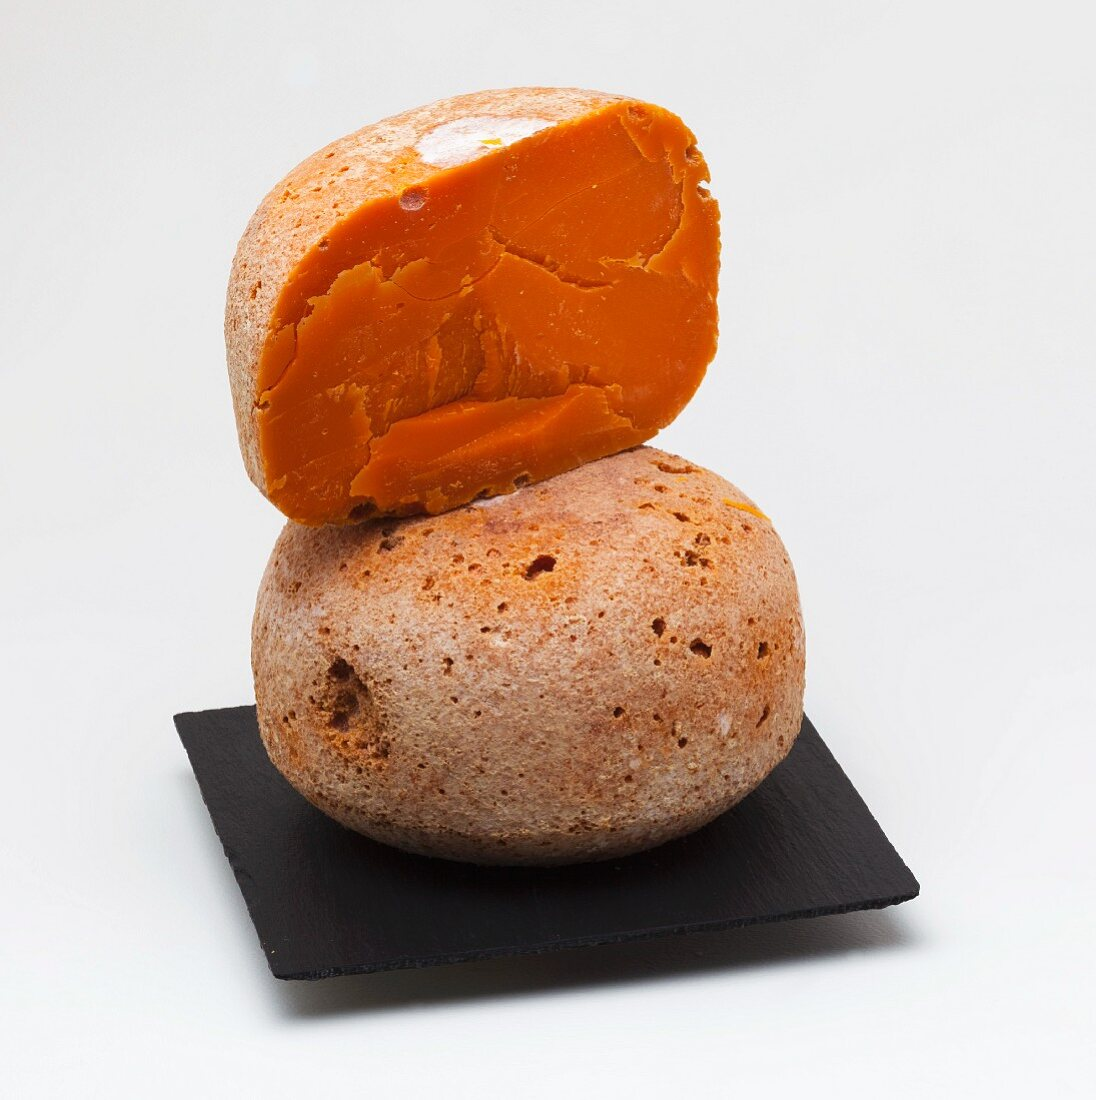 Mimolette (round hard cheese from France)